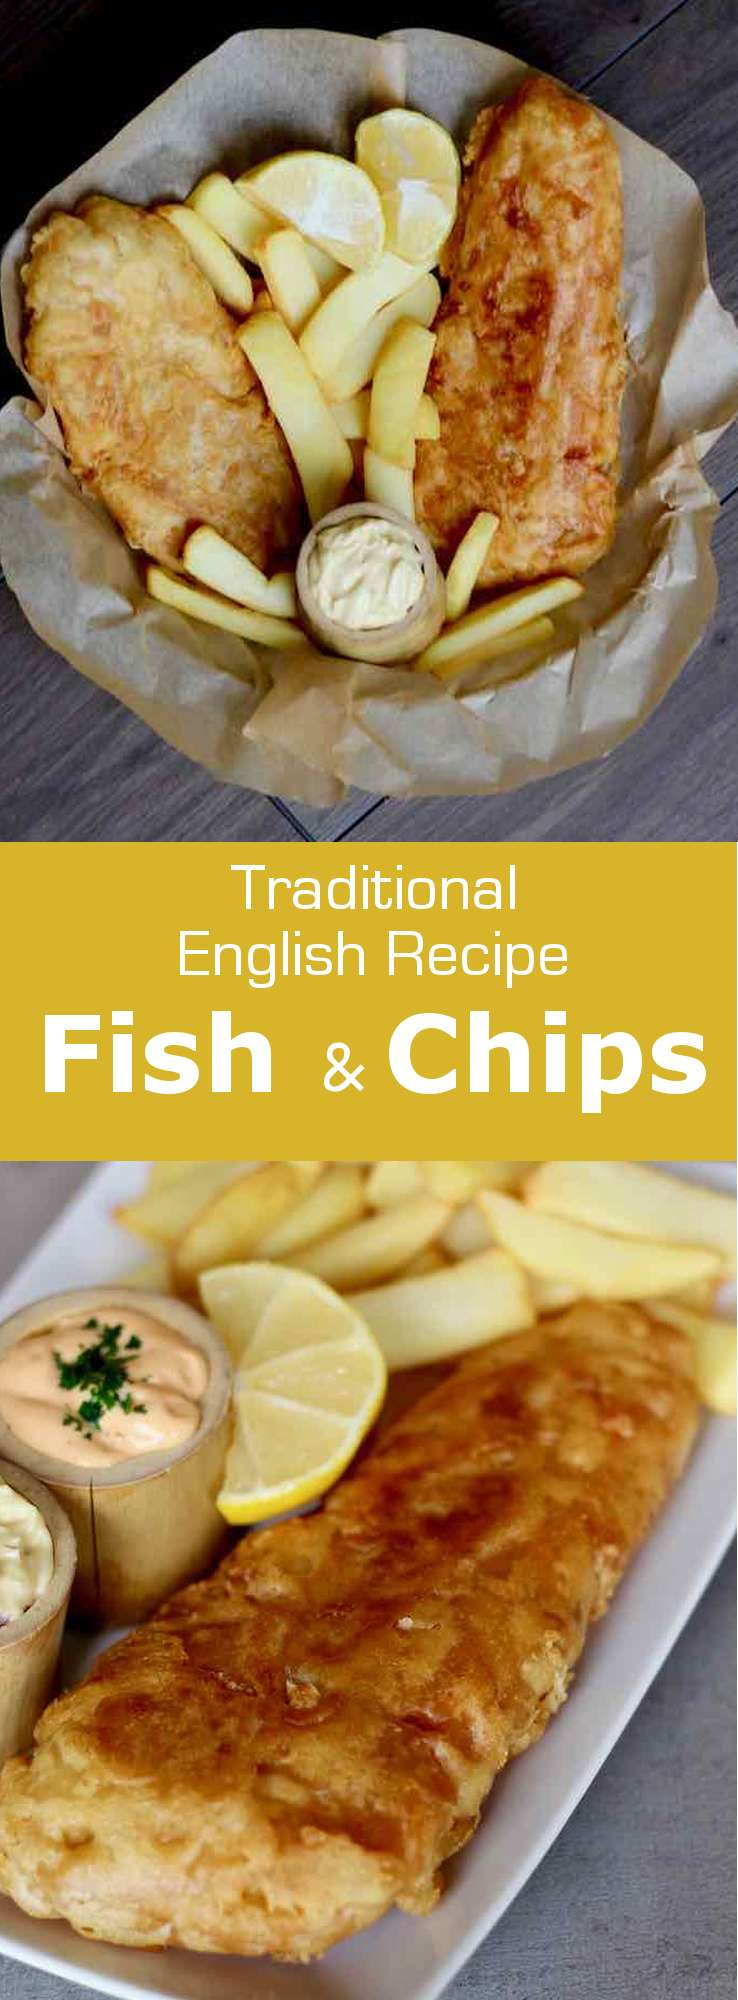 Fish and chips, which consists in deep-fried beer-battered fish fillets served with French fries, is a popular dish from the United Kingdom, but also Australia and New Zealand. #UnitedKingdom #EnglishCuisine #BritishCuisine #EnglishFood #BritishFood #EnglishRecipe #BritishRecipe #WorldCuisine #196flavors